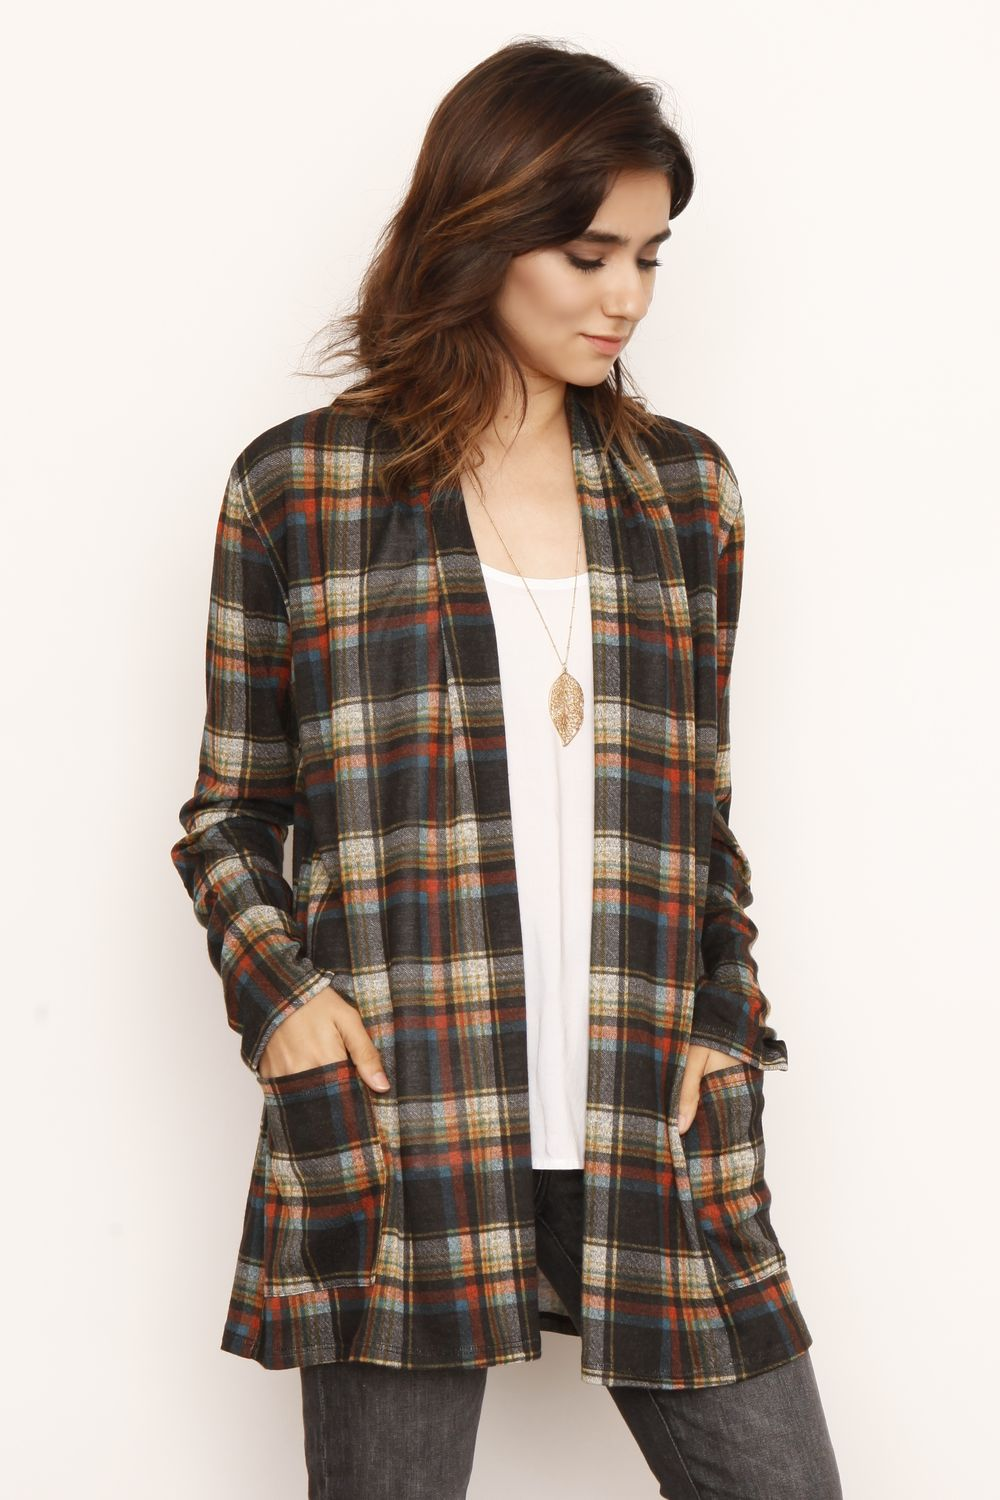 Black & Multi Color Plaid Elbow Patch Cardigan With Pockets